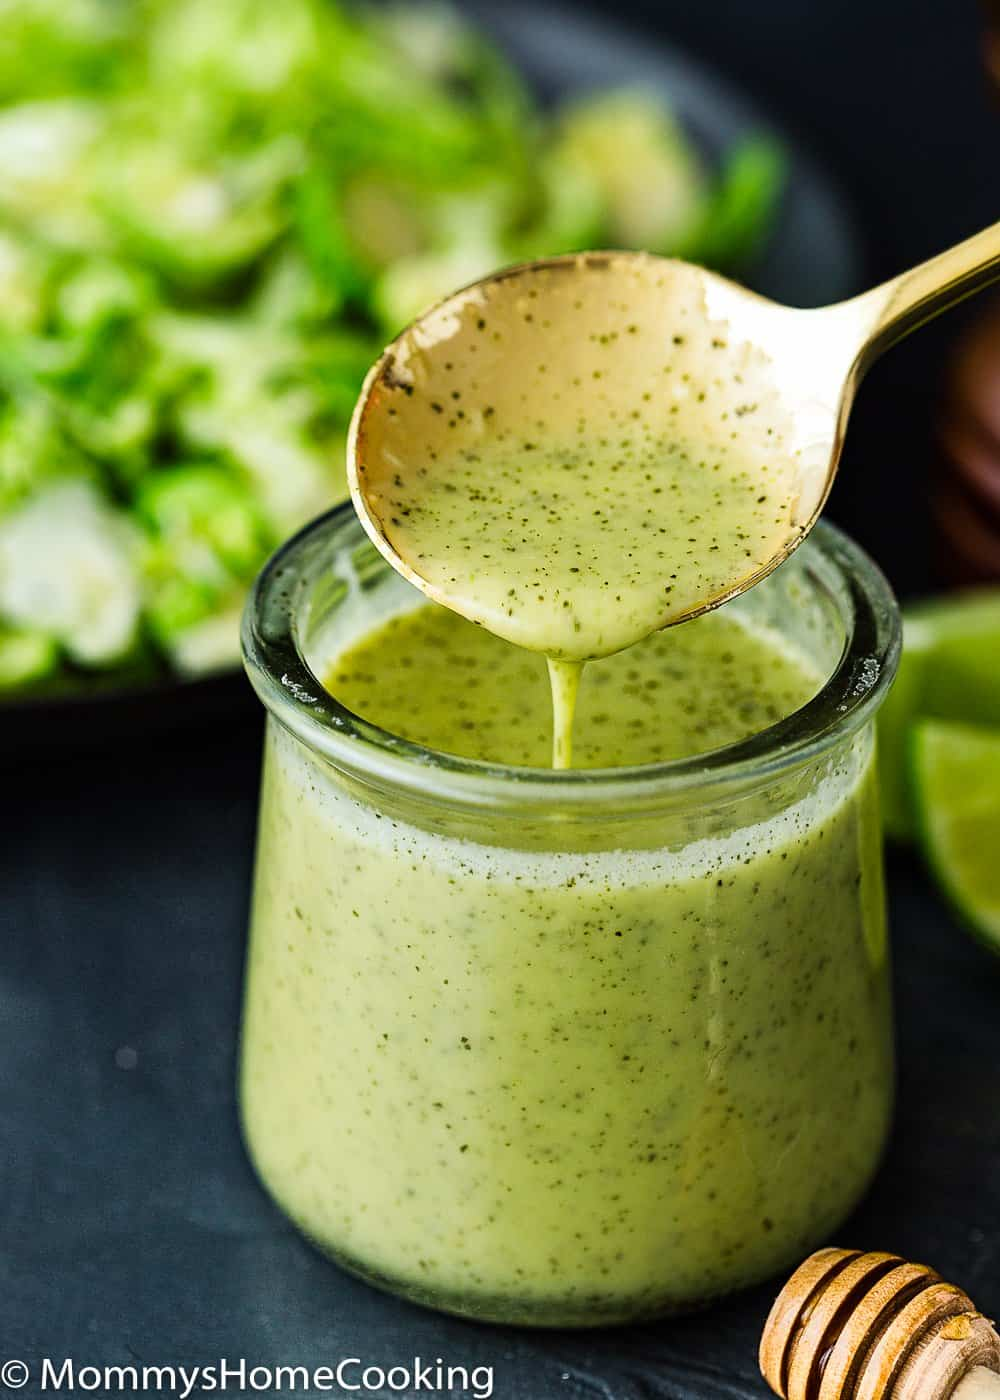 Green onion vinaigrette in a container with a spoon